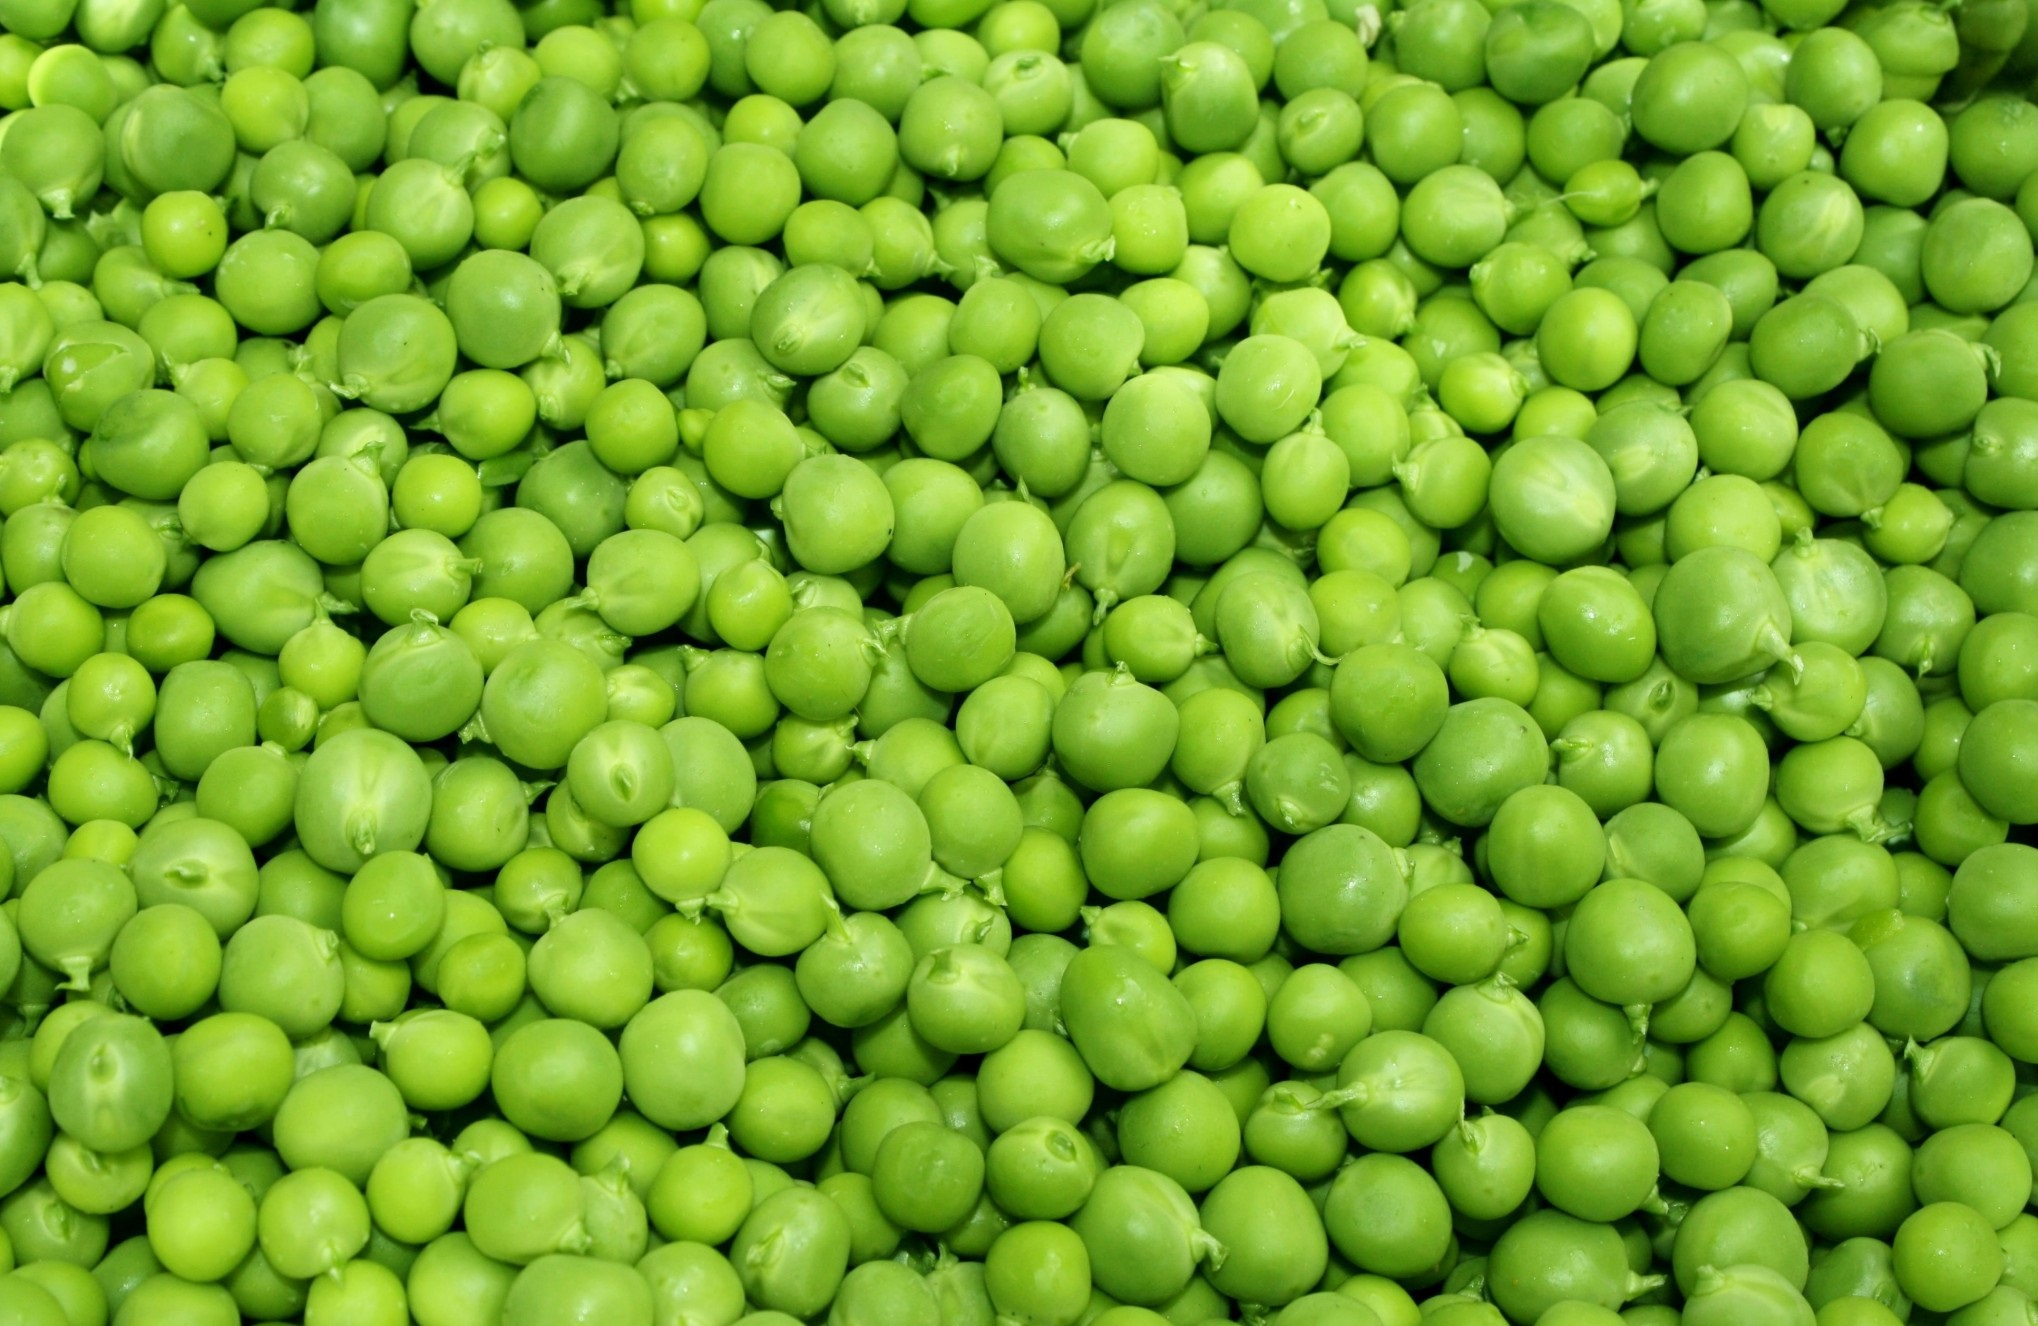 Peas High Quality Wallpapers